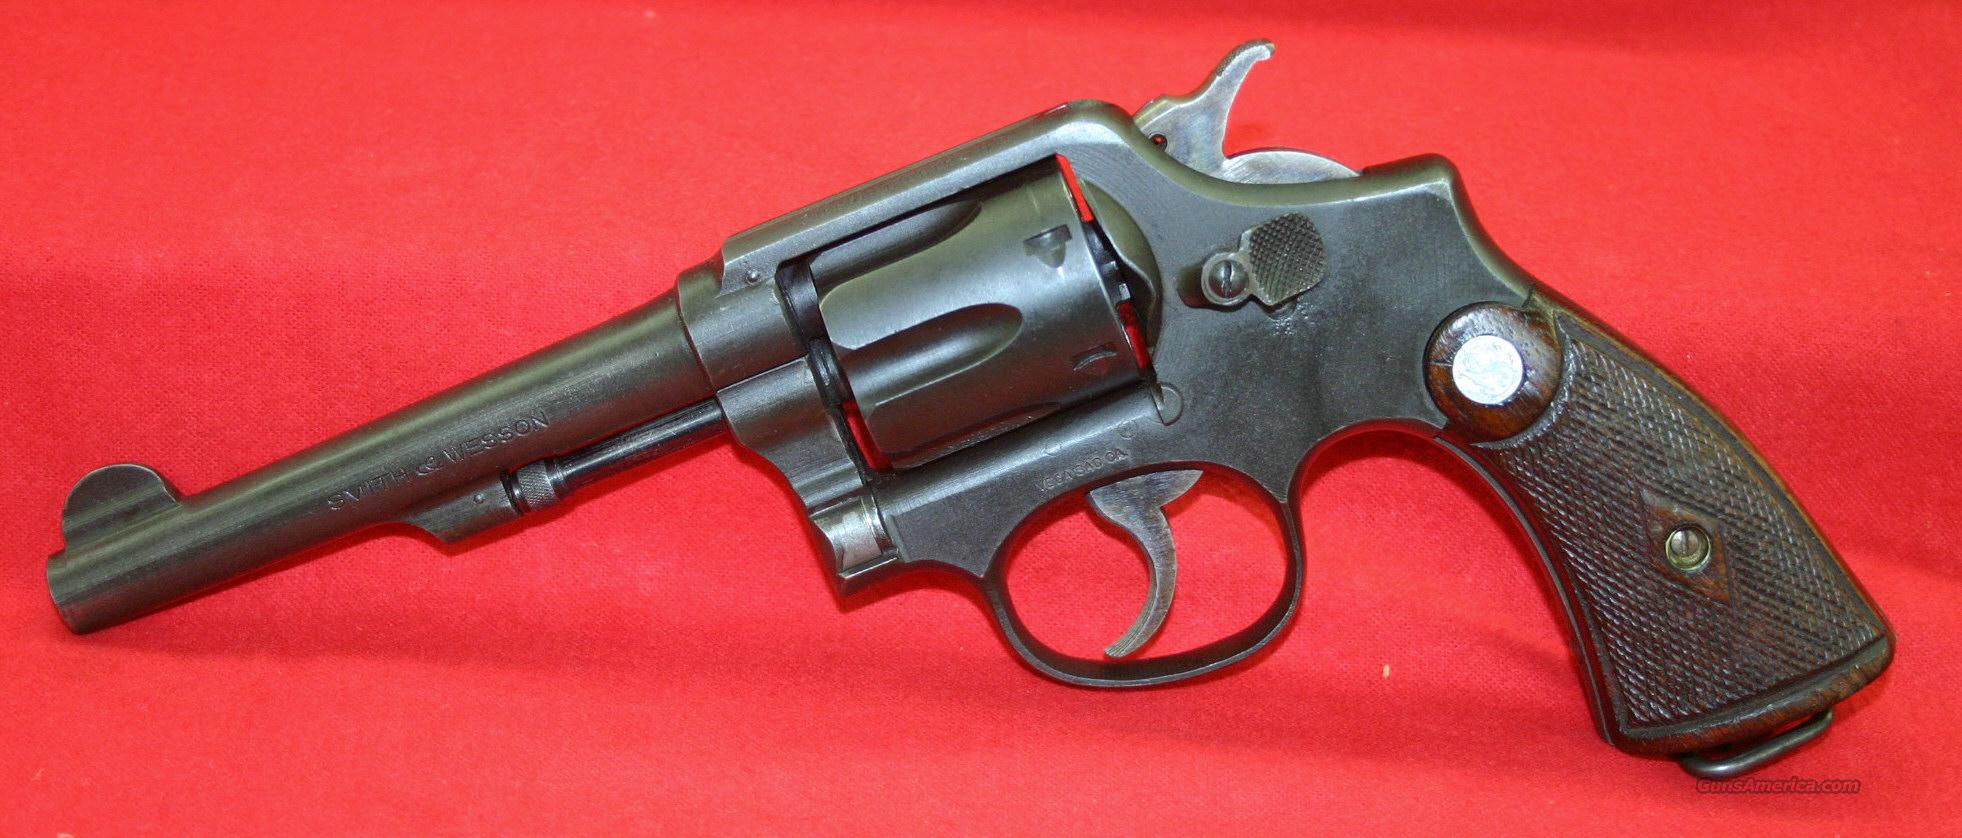 S&W M&P Victory Model  Guns > Pistols > Smith & Wesson Revolvers > Full Frame Revolver